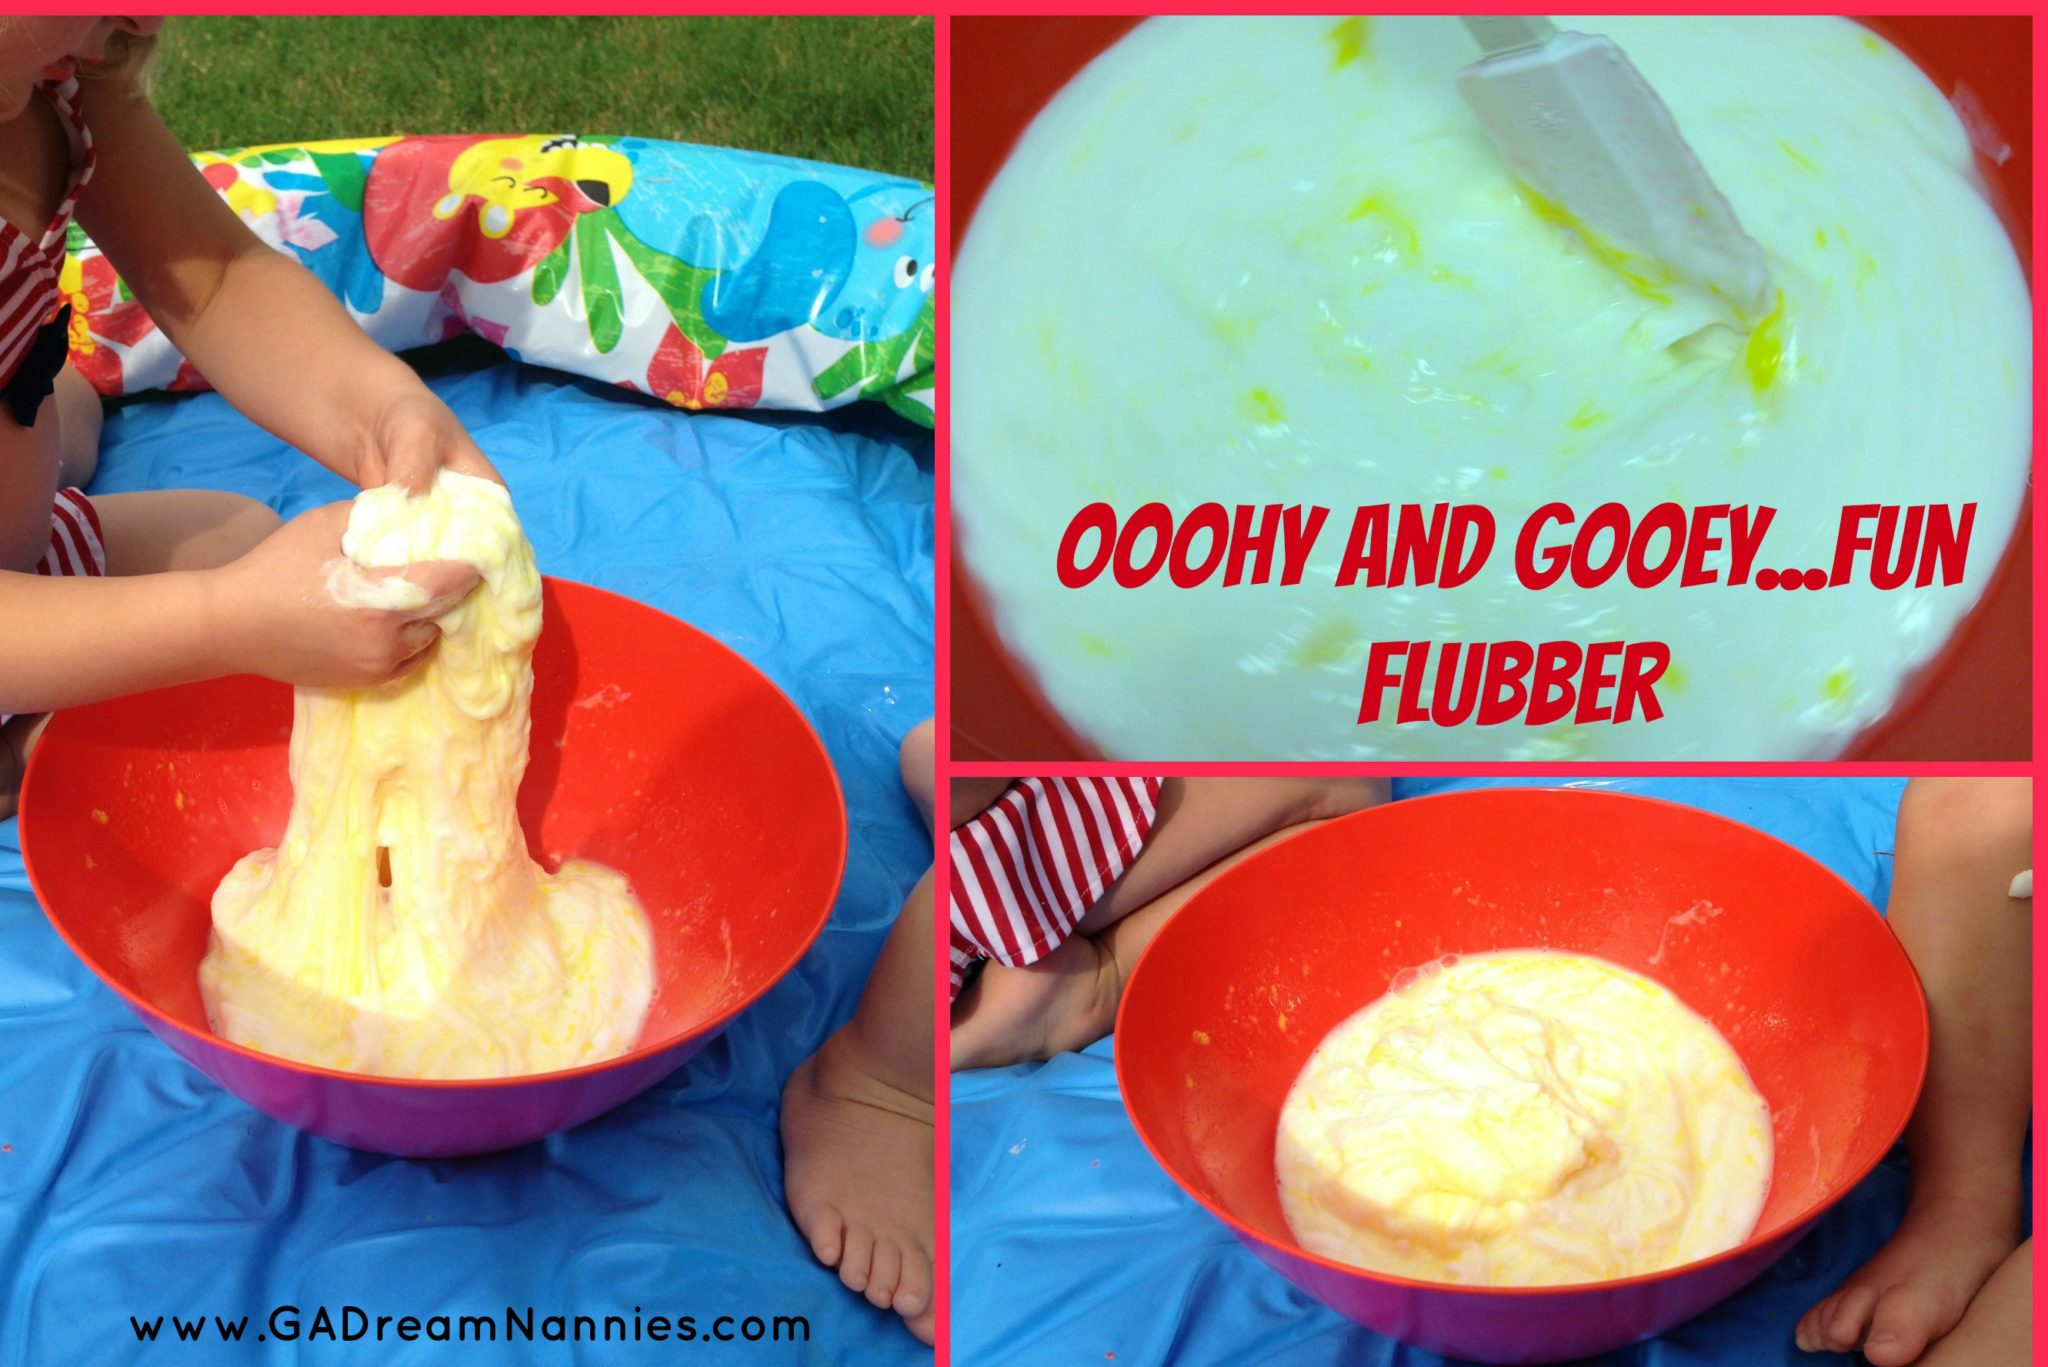 Nanny crafts make fun flubber georgia 39 s dream nannies for Cool things to make and do